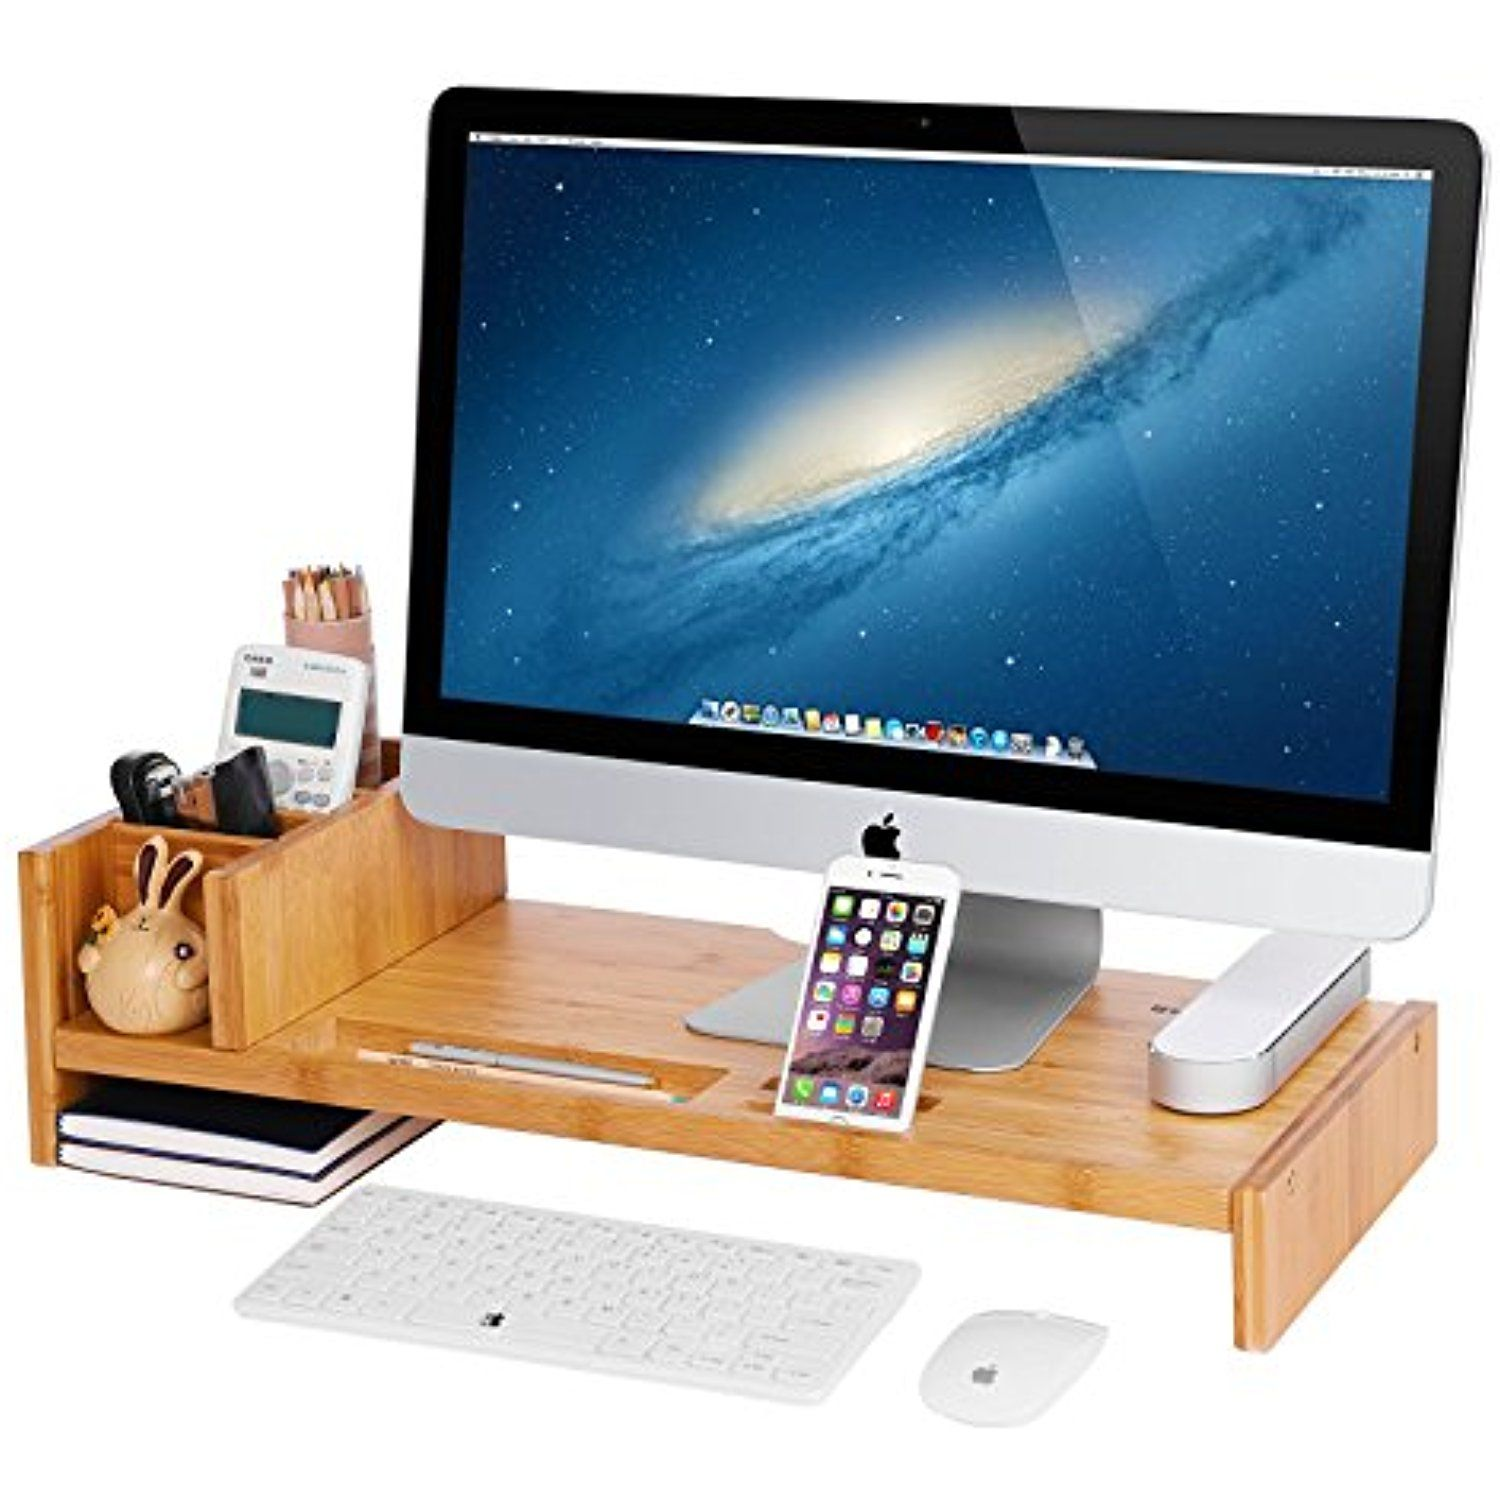 Songmics Bamboo Monitor Stand Riser With Adjustable Storage Organizer Laptop Tv Printer Stand Desk Organizer F Desk Organization Monitor Stand Cool Office Desk